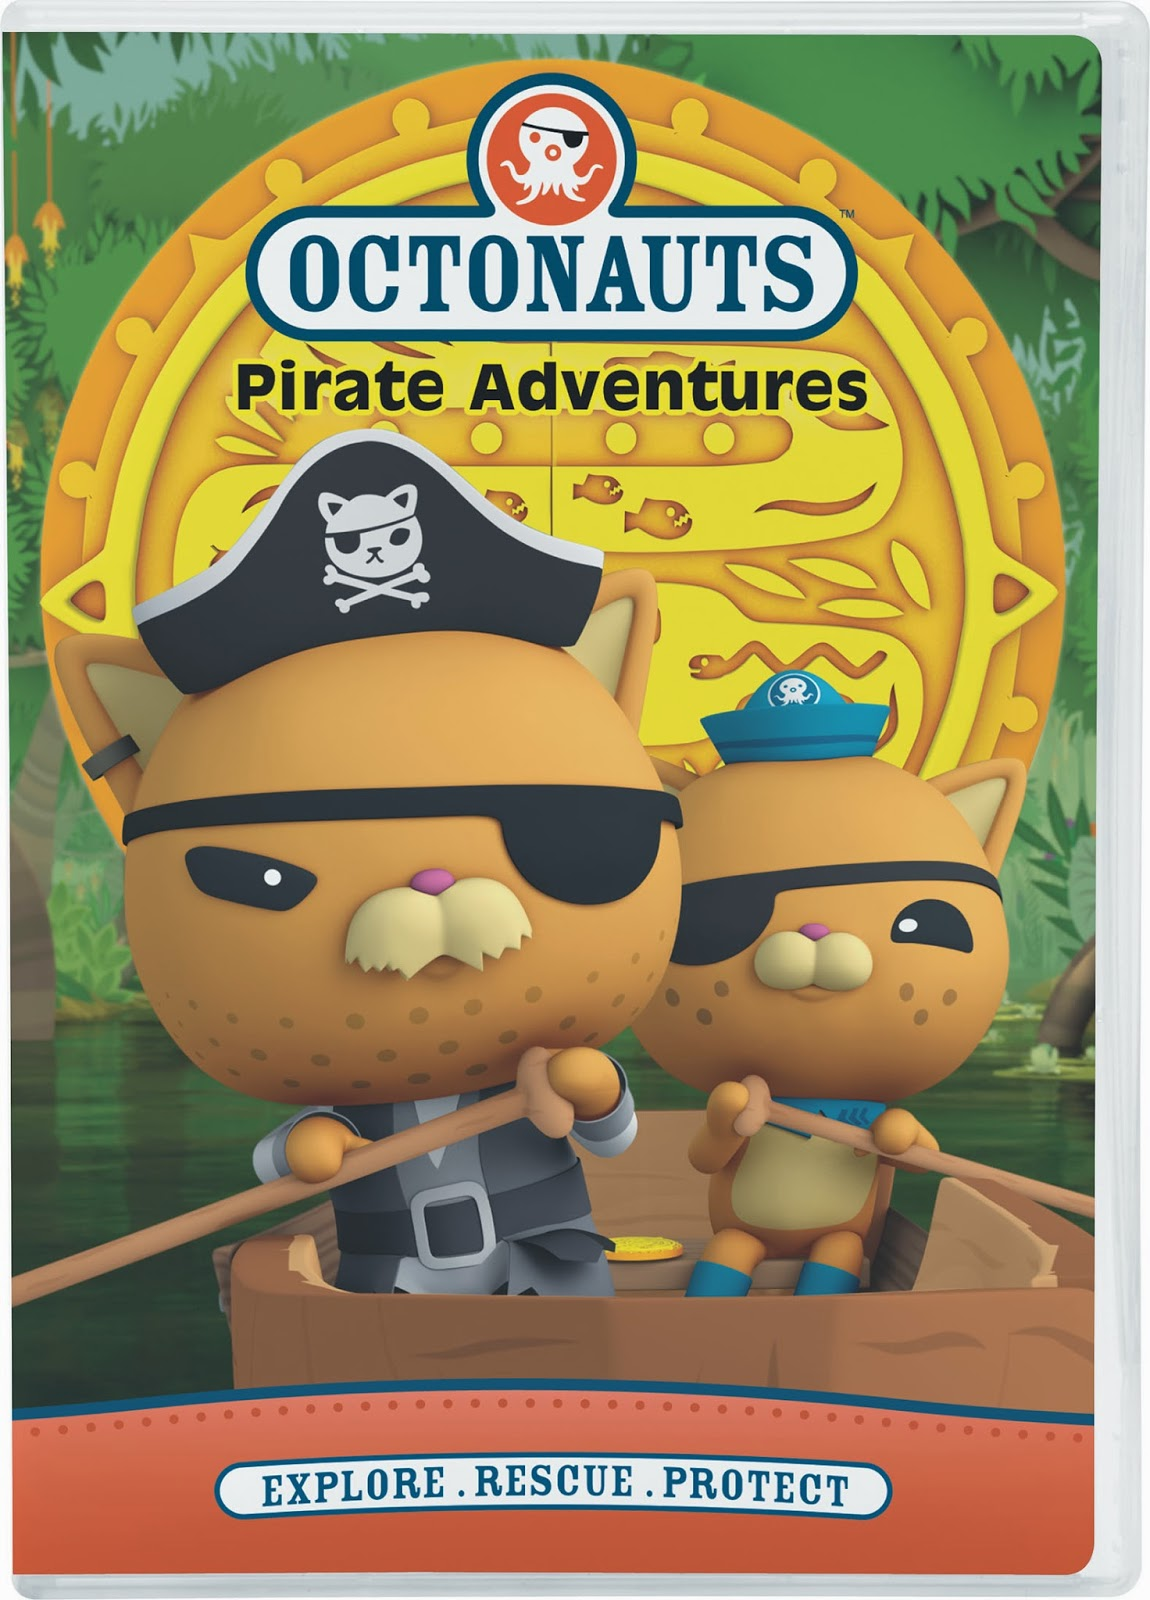 http://www.ncircleentertainment.com/octonauts-pirate-adventure/843501002186